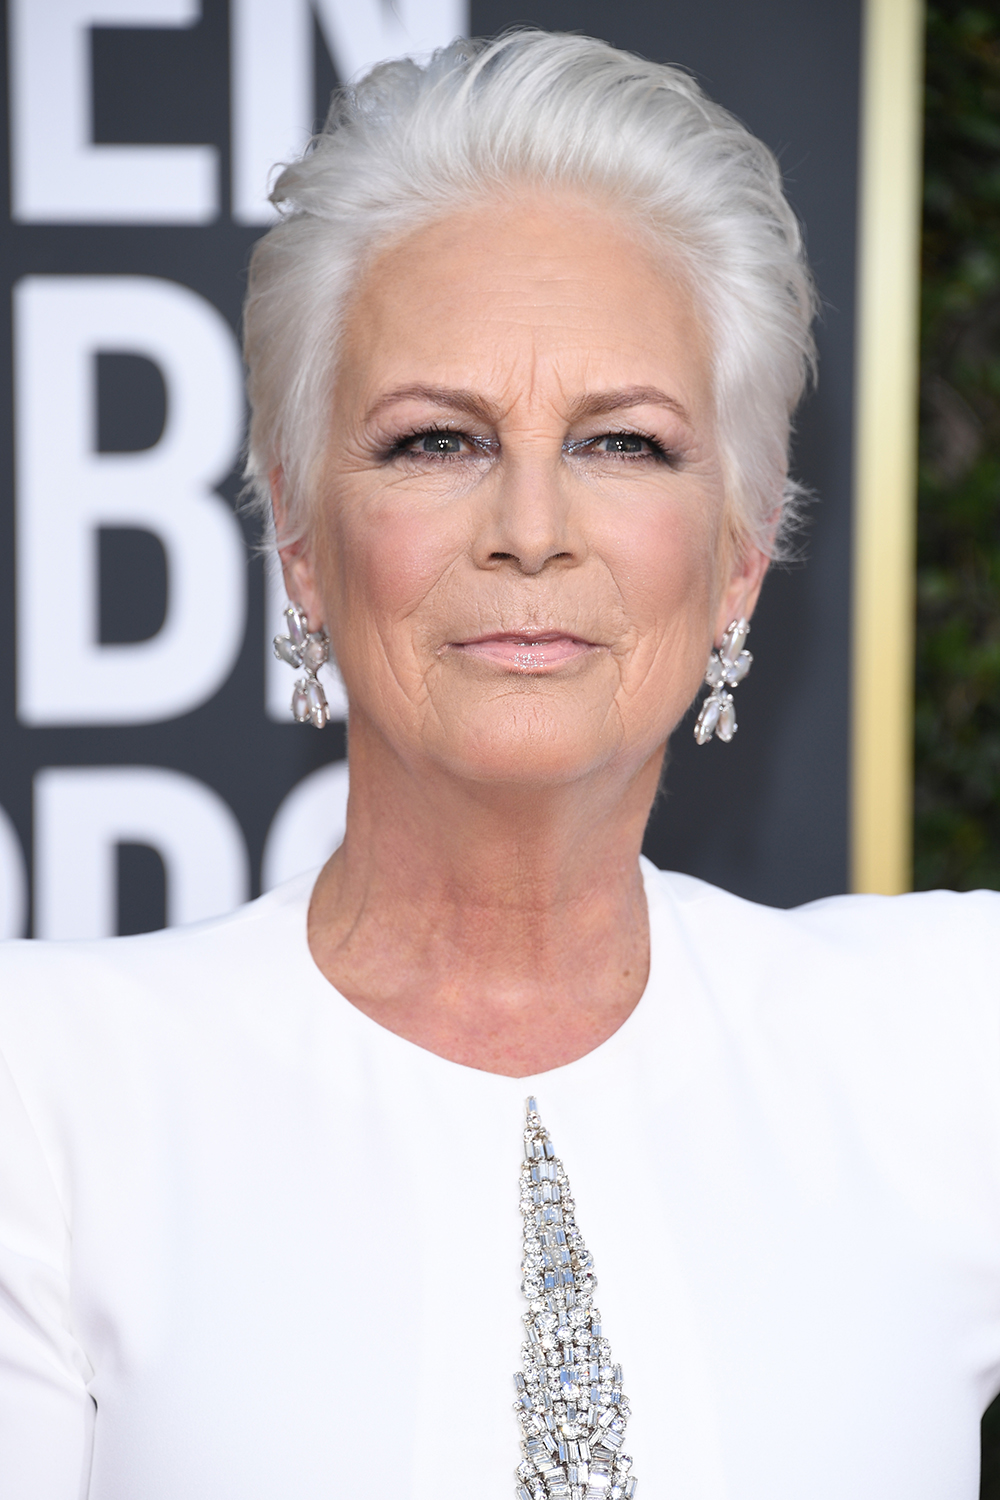 The actress looked stunning on the red carpet at the 2019 Golden Globes.